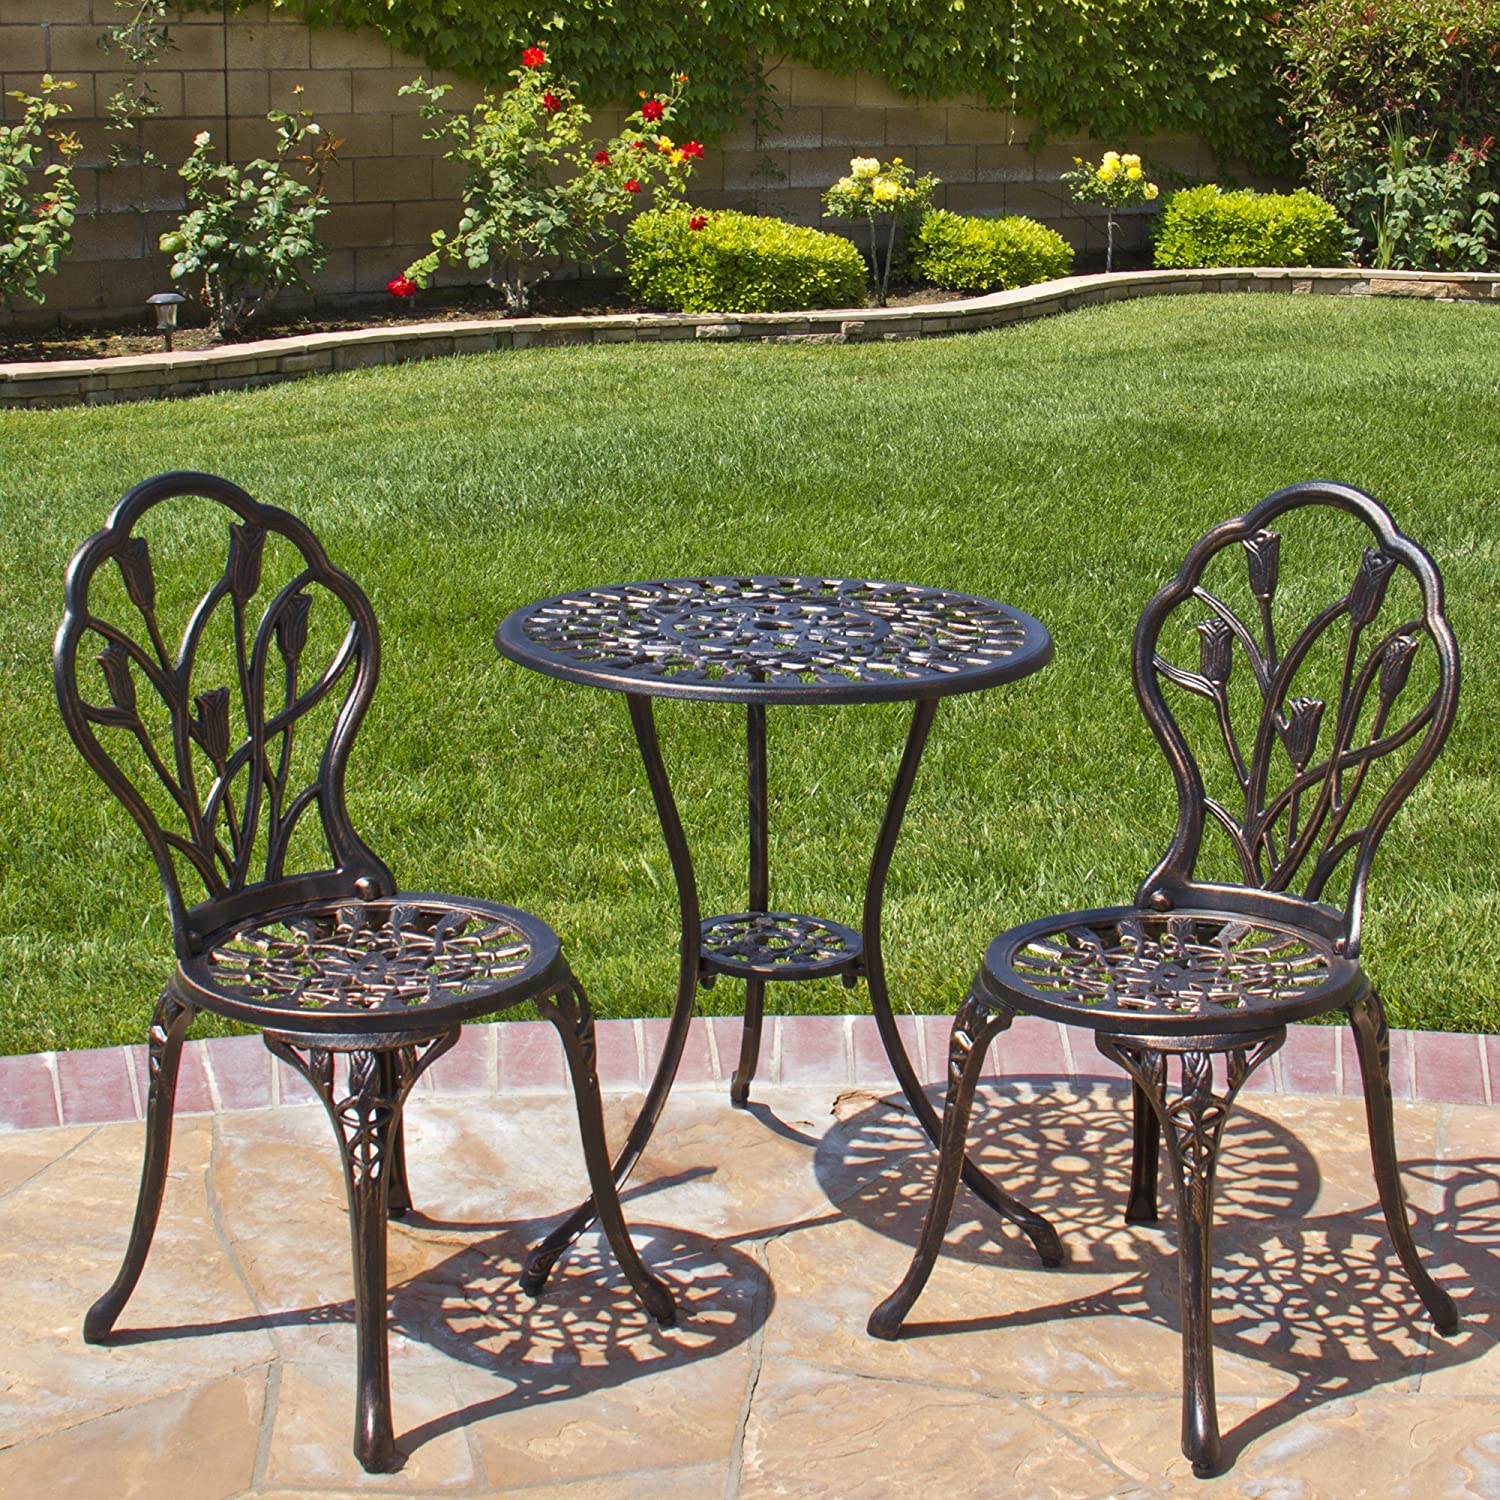 Best Choice Products Outdoor Patio Furniture Tulip Design Cast Aluminum 3  Piece Bistro Set in Antique. Shop Amazon com   Patio Furniture Sets